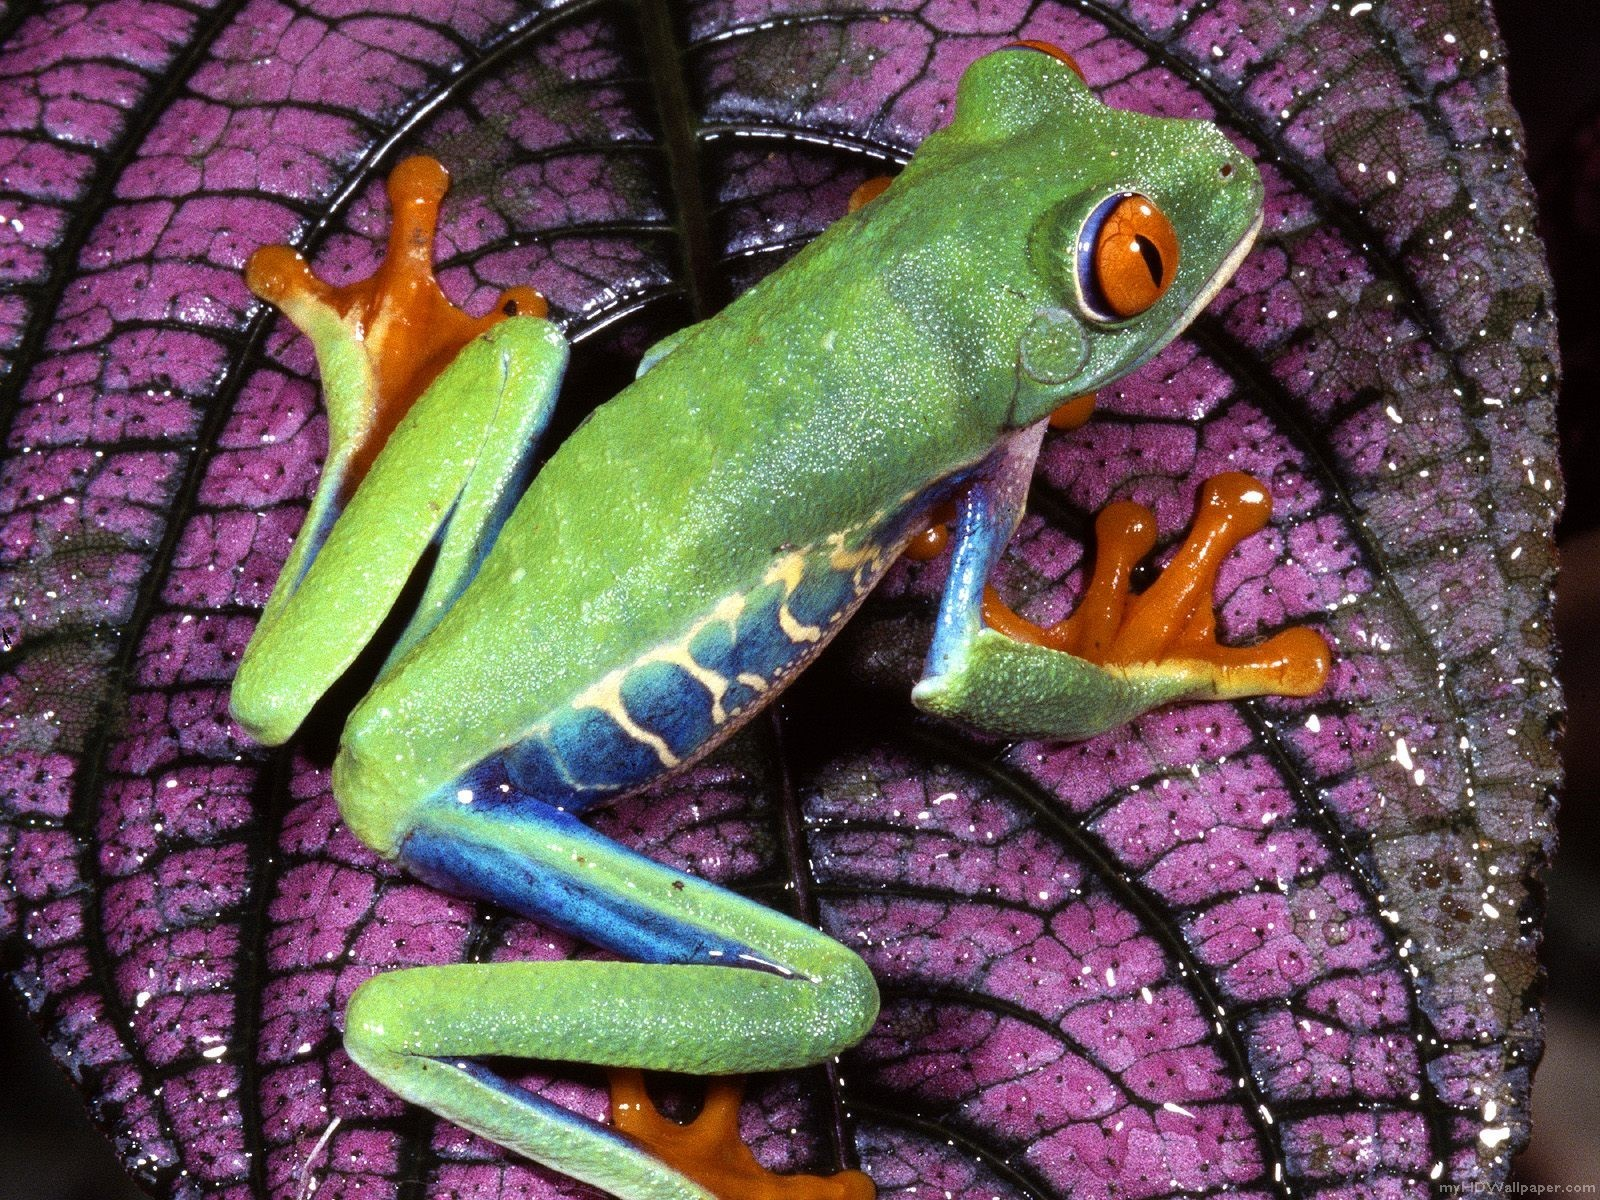 nature Frogs Red-Eyed Tree HD Wallpaper